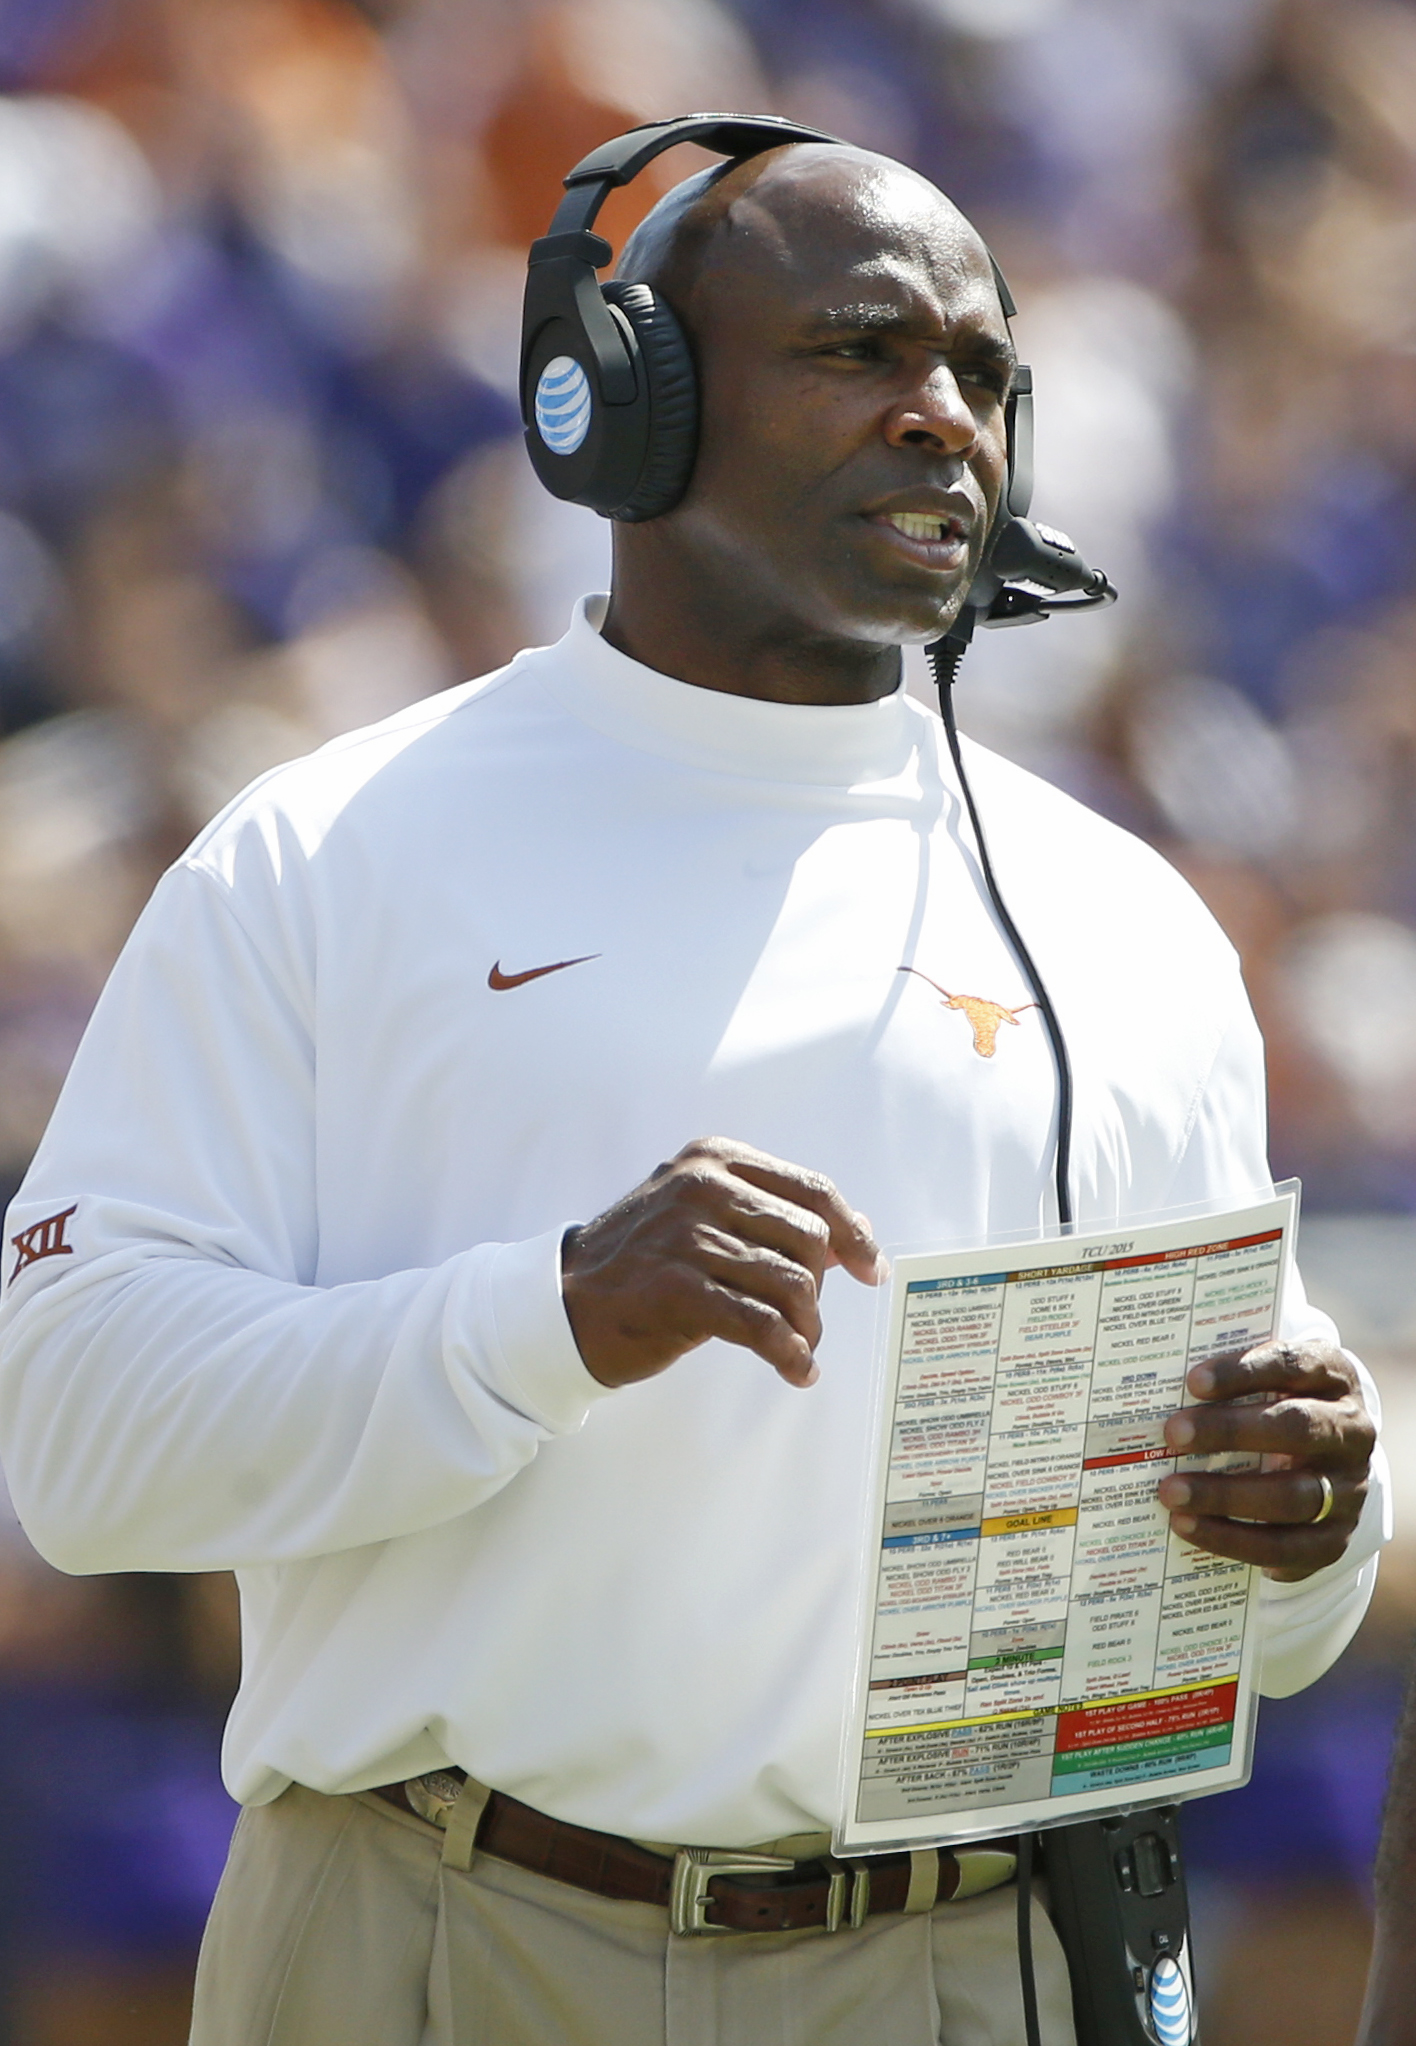 Texas head coach Charlie Strong watches from the sidelines during the second half of an NCAA college football game against TCU, Saturday, Oct. 3, 2015, in Fort Worth, Texas. (AP Photo/Ron Jenkins)